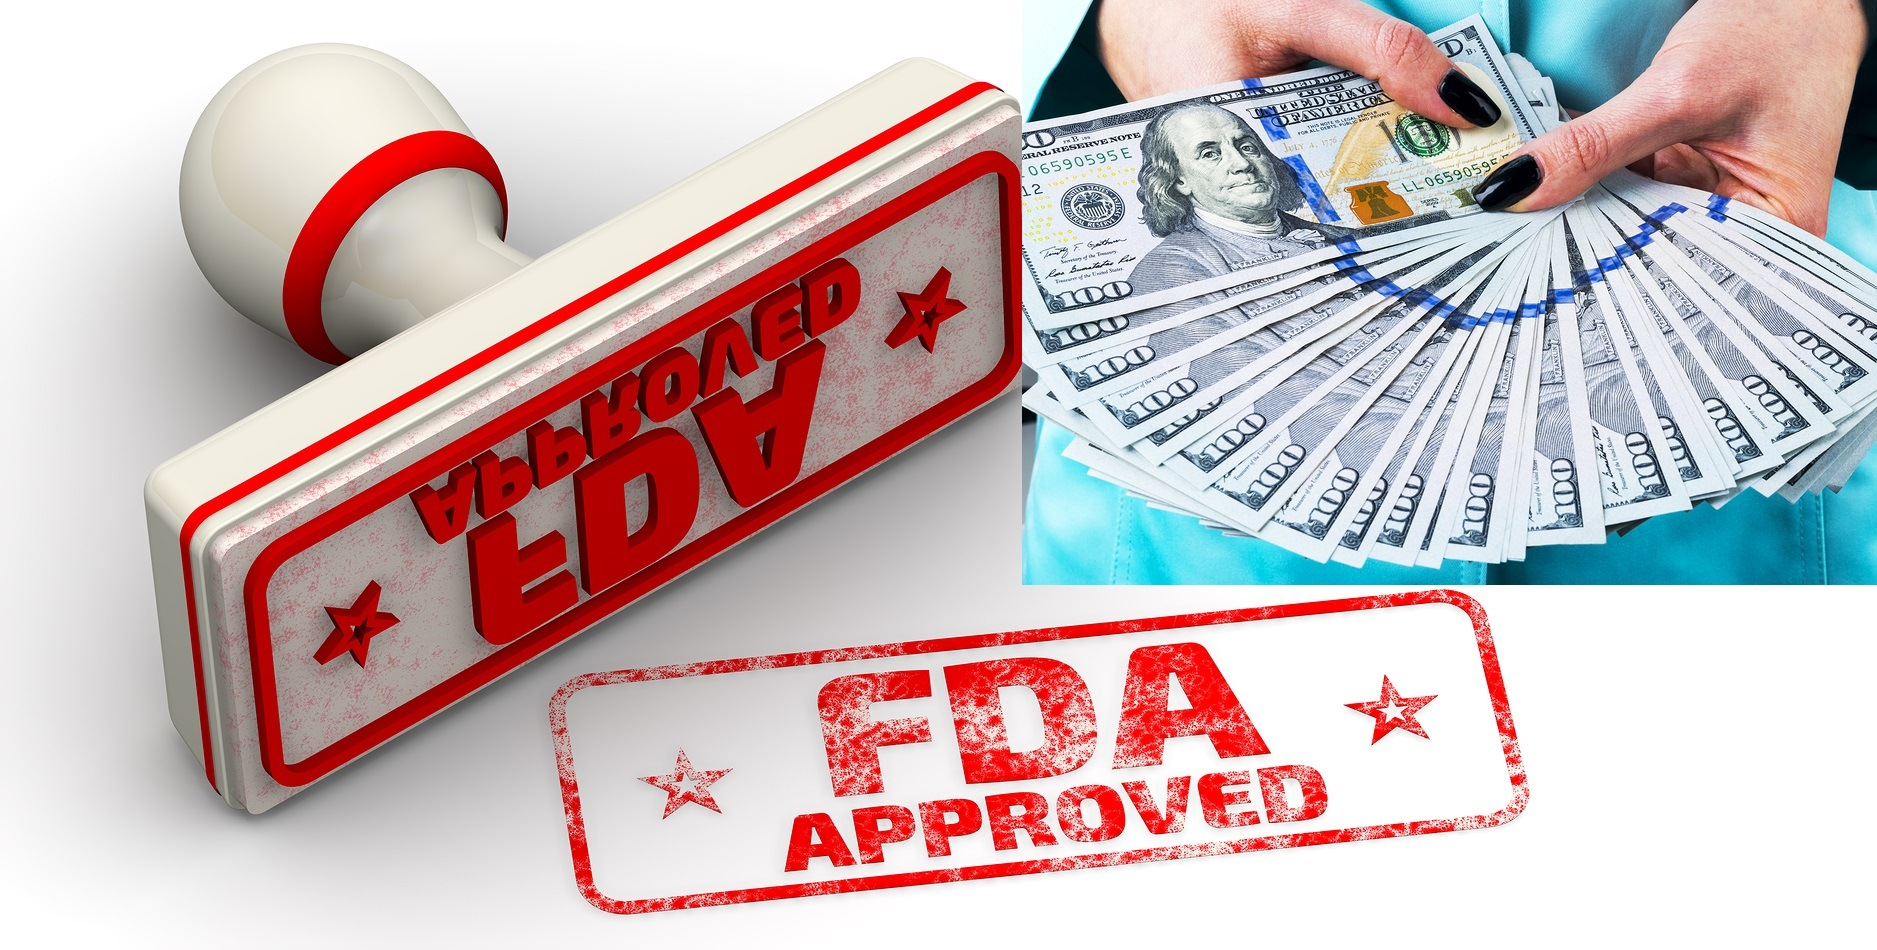 "FDA approved. Red seal and imprint ""FDA APPROVED"" on white surface. FDA - Food and Drug Administration is a federal agency of the United States Department of Health and Human Services. Isolated. 3D Illustration"